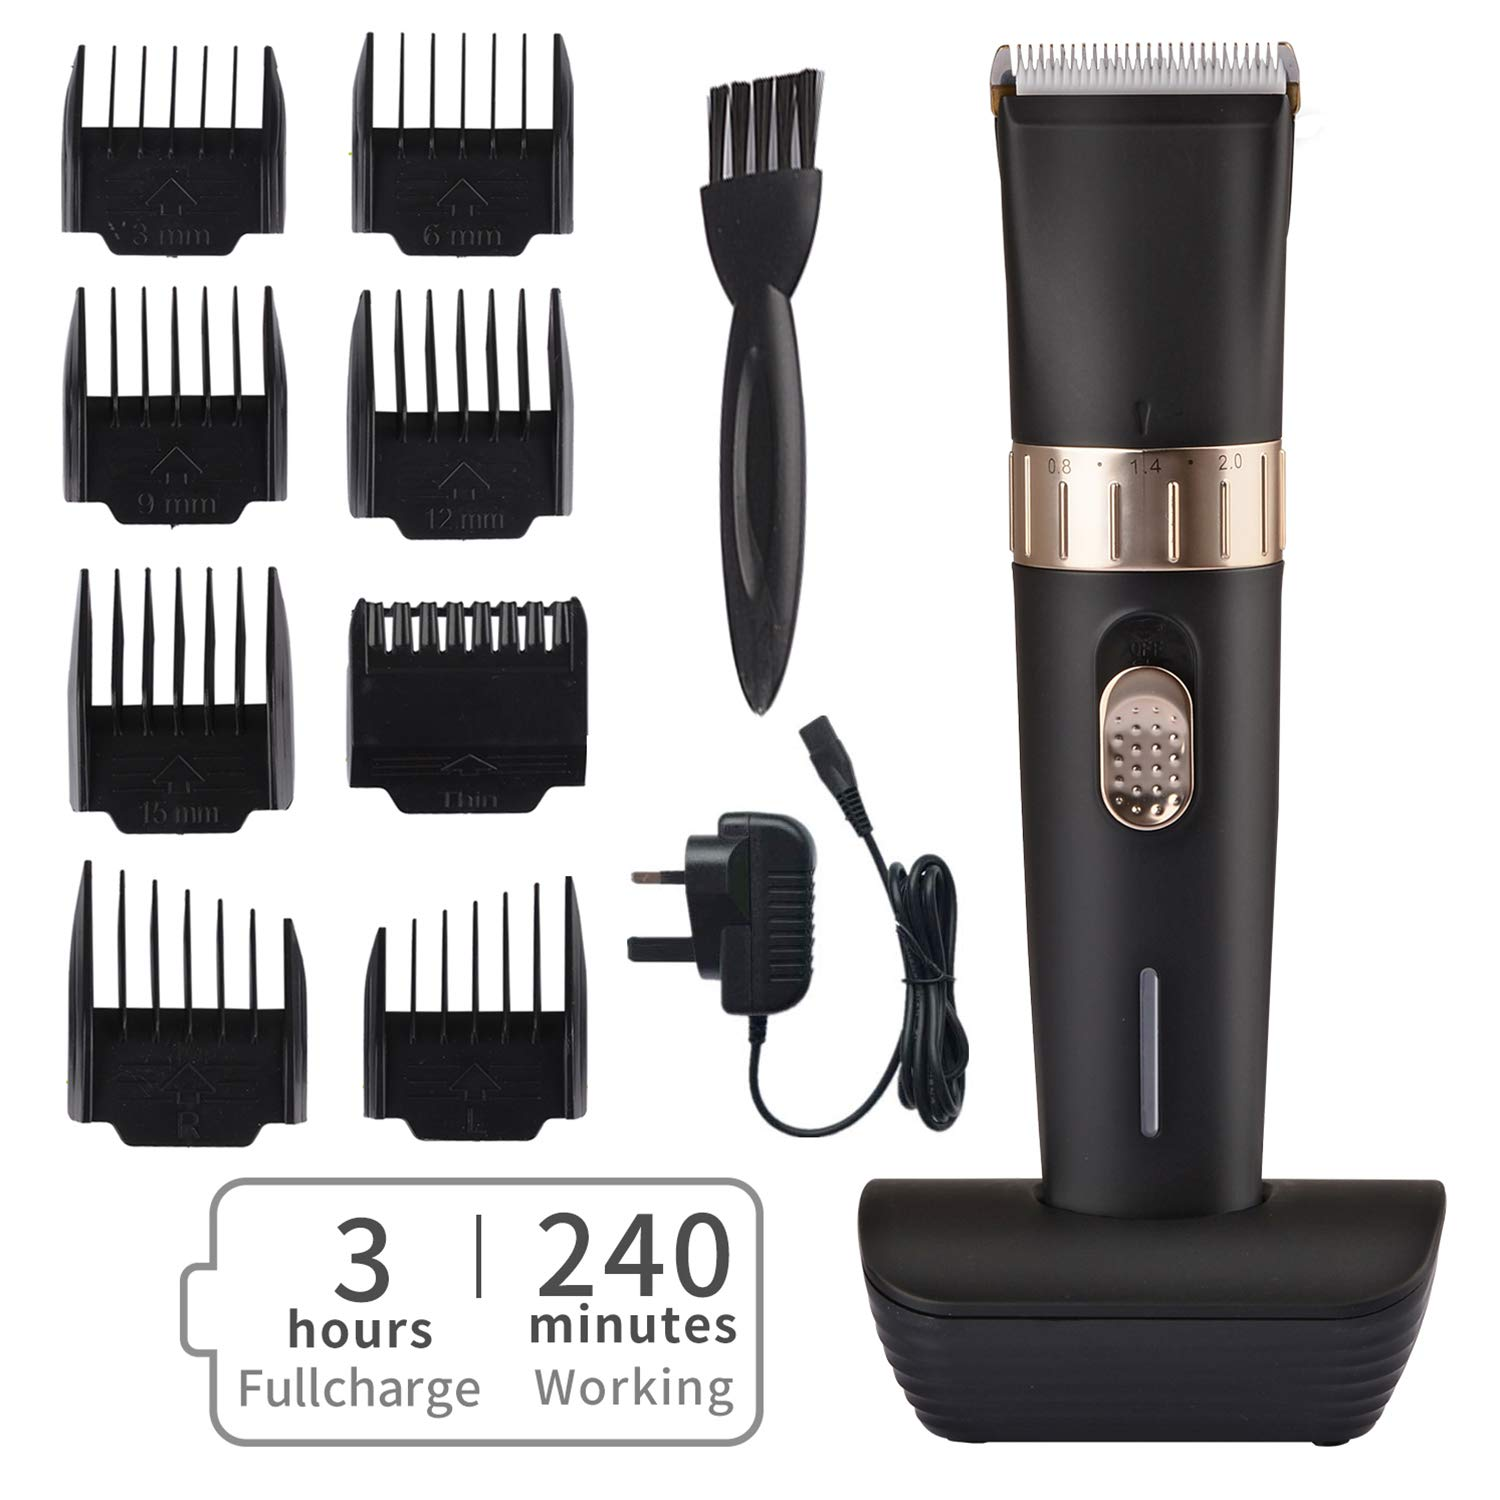 BESTBOMG Cordless Hair Clipper Kit for Men, Speed Adjustable Hair Trimmer with Ceramic Blade, Rechargeable Hair Cutting Machine with 8 Guide Combs Used for Family Hairdressing